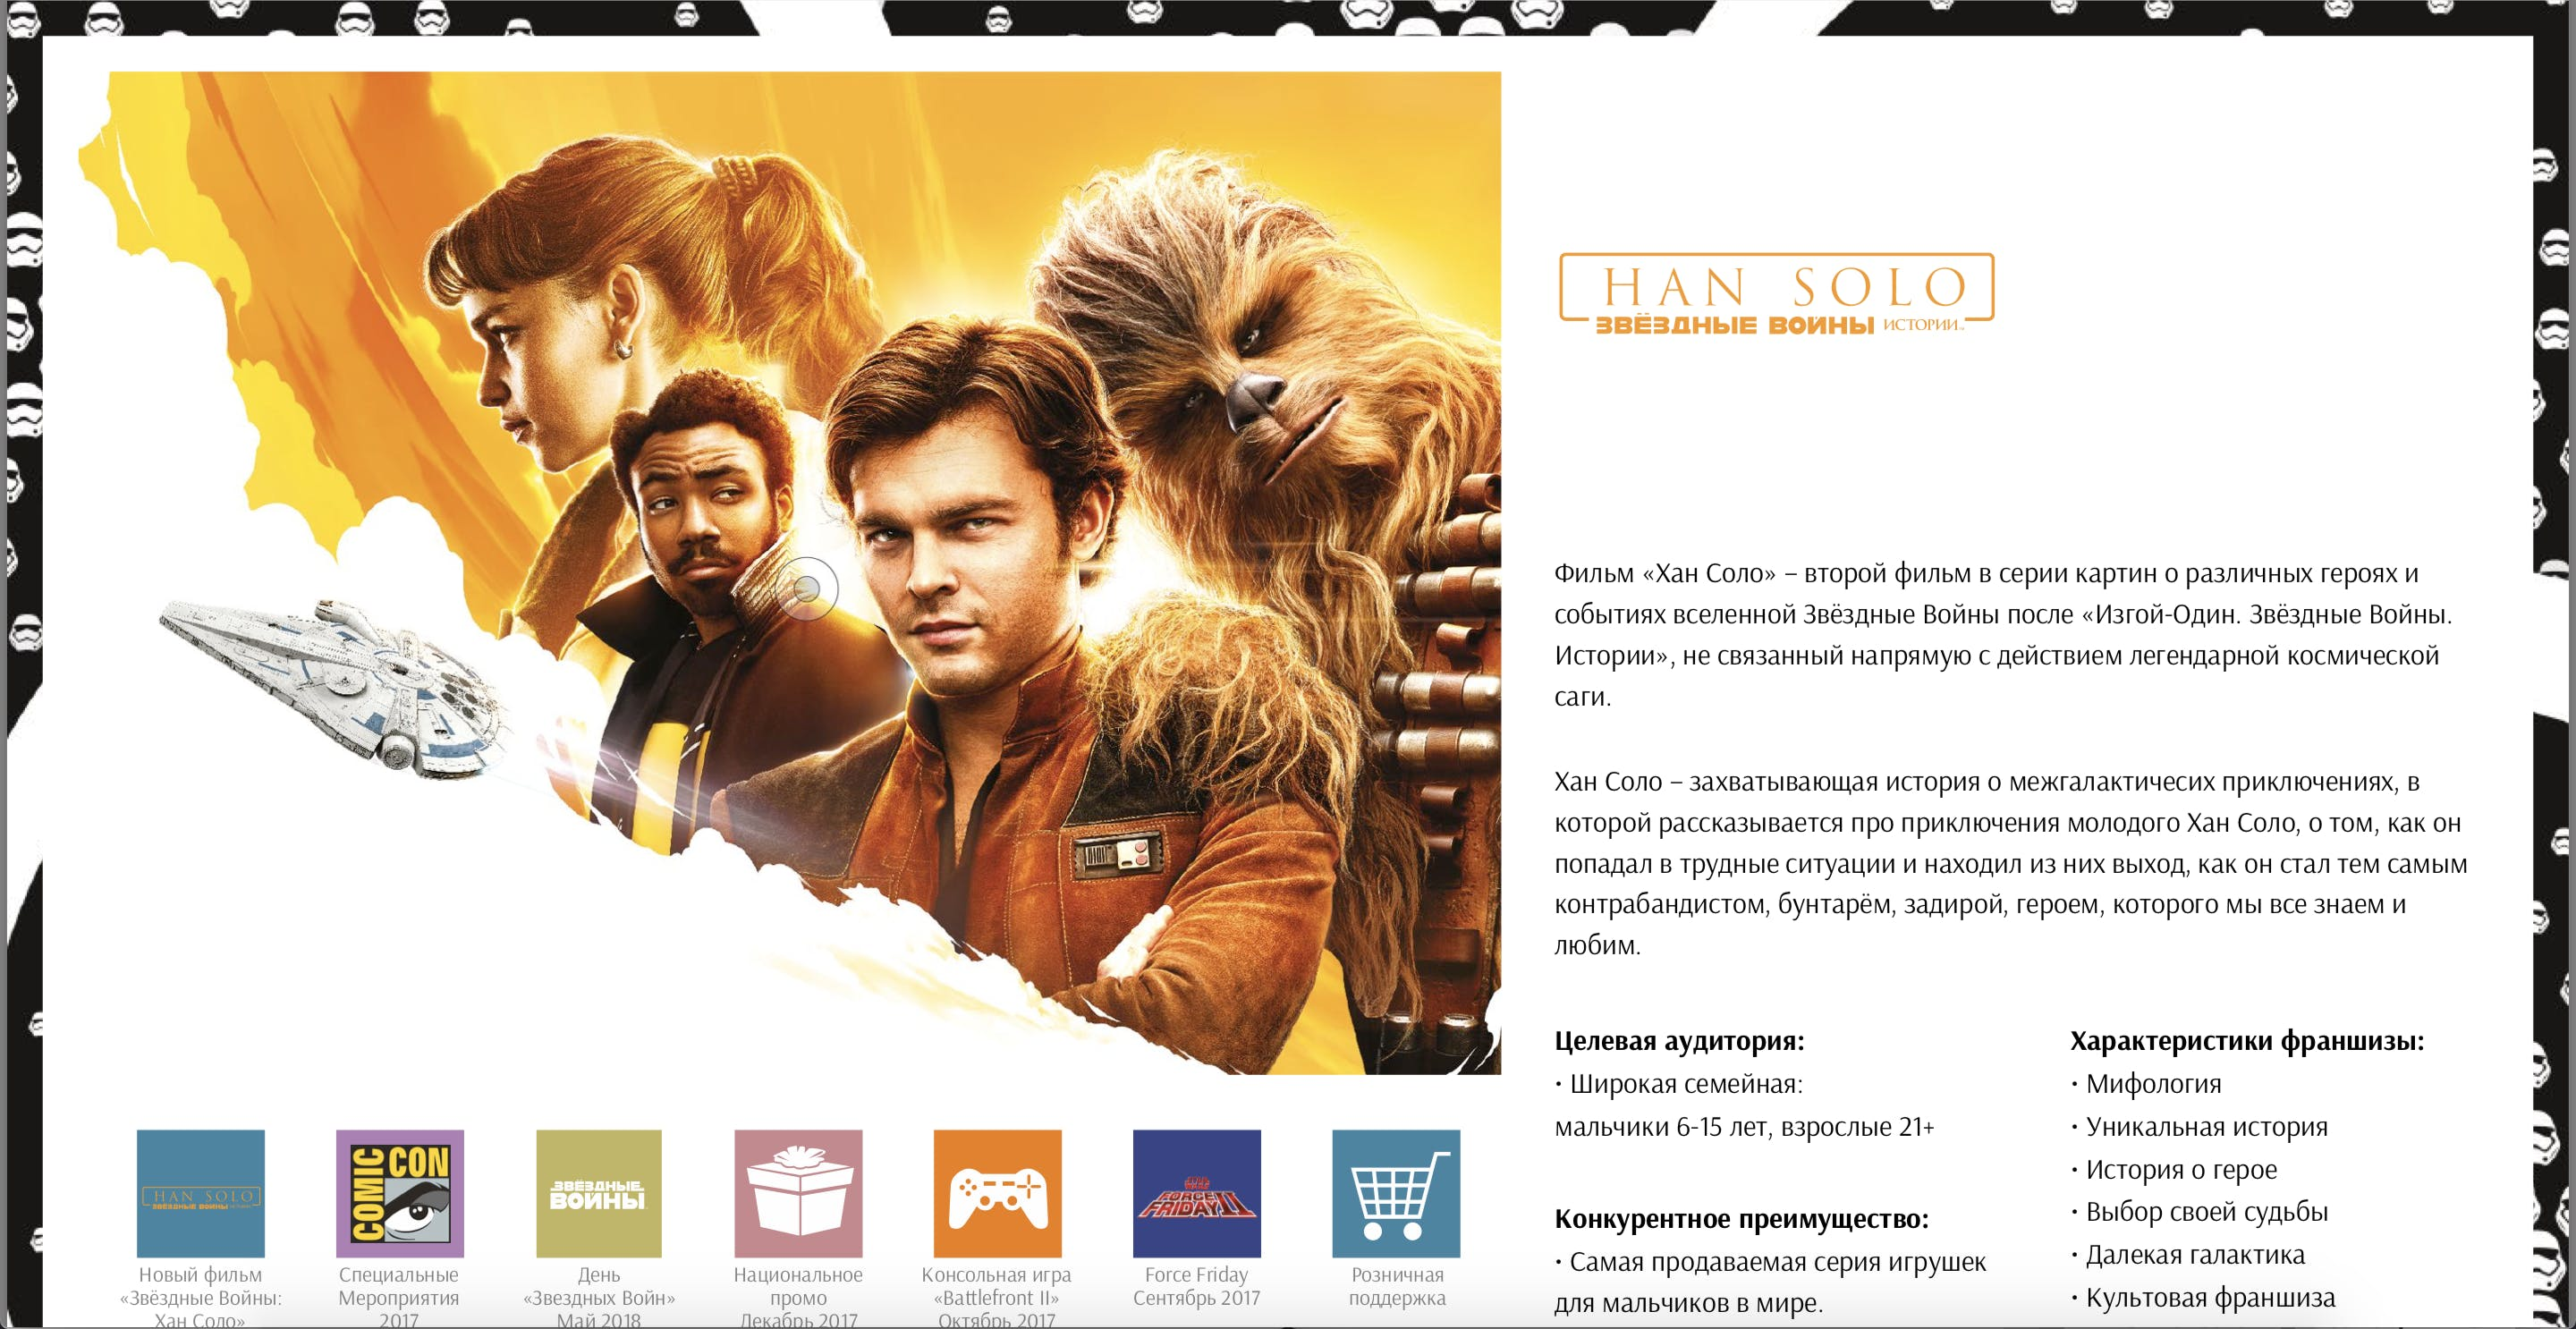 han solo synopsis russian